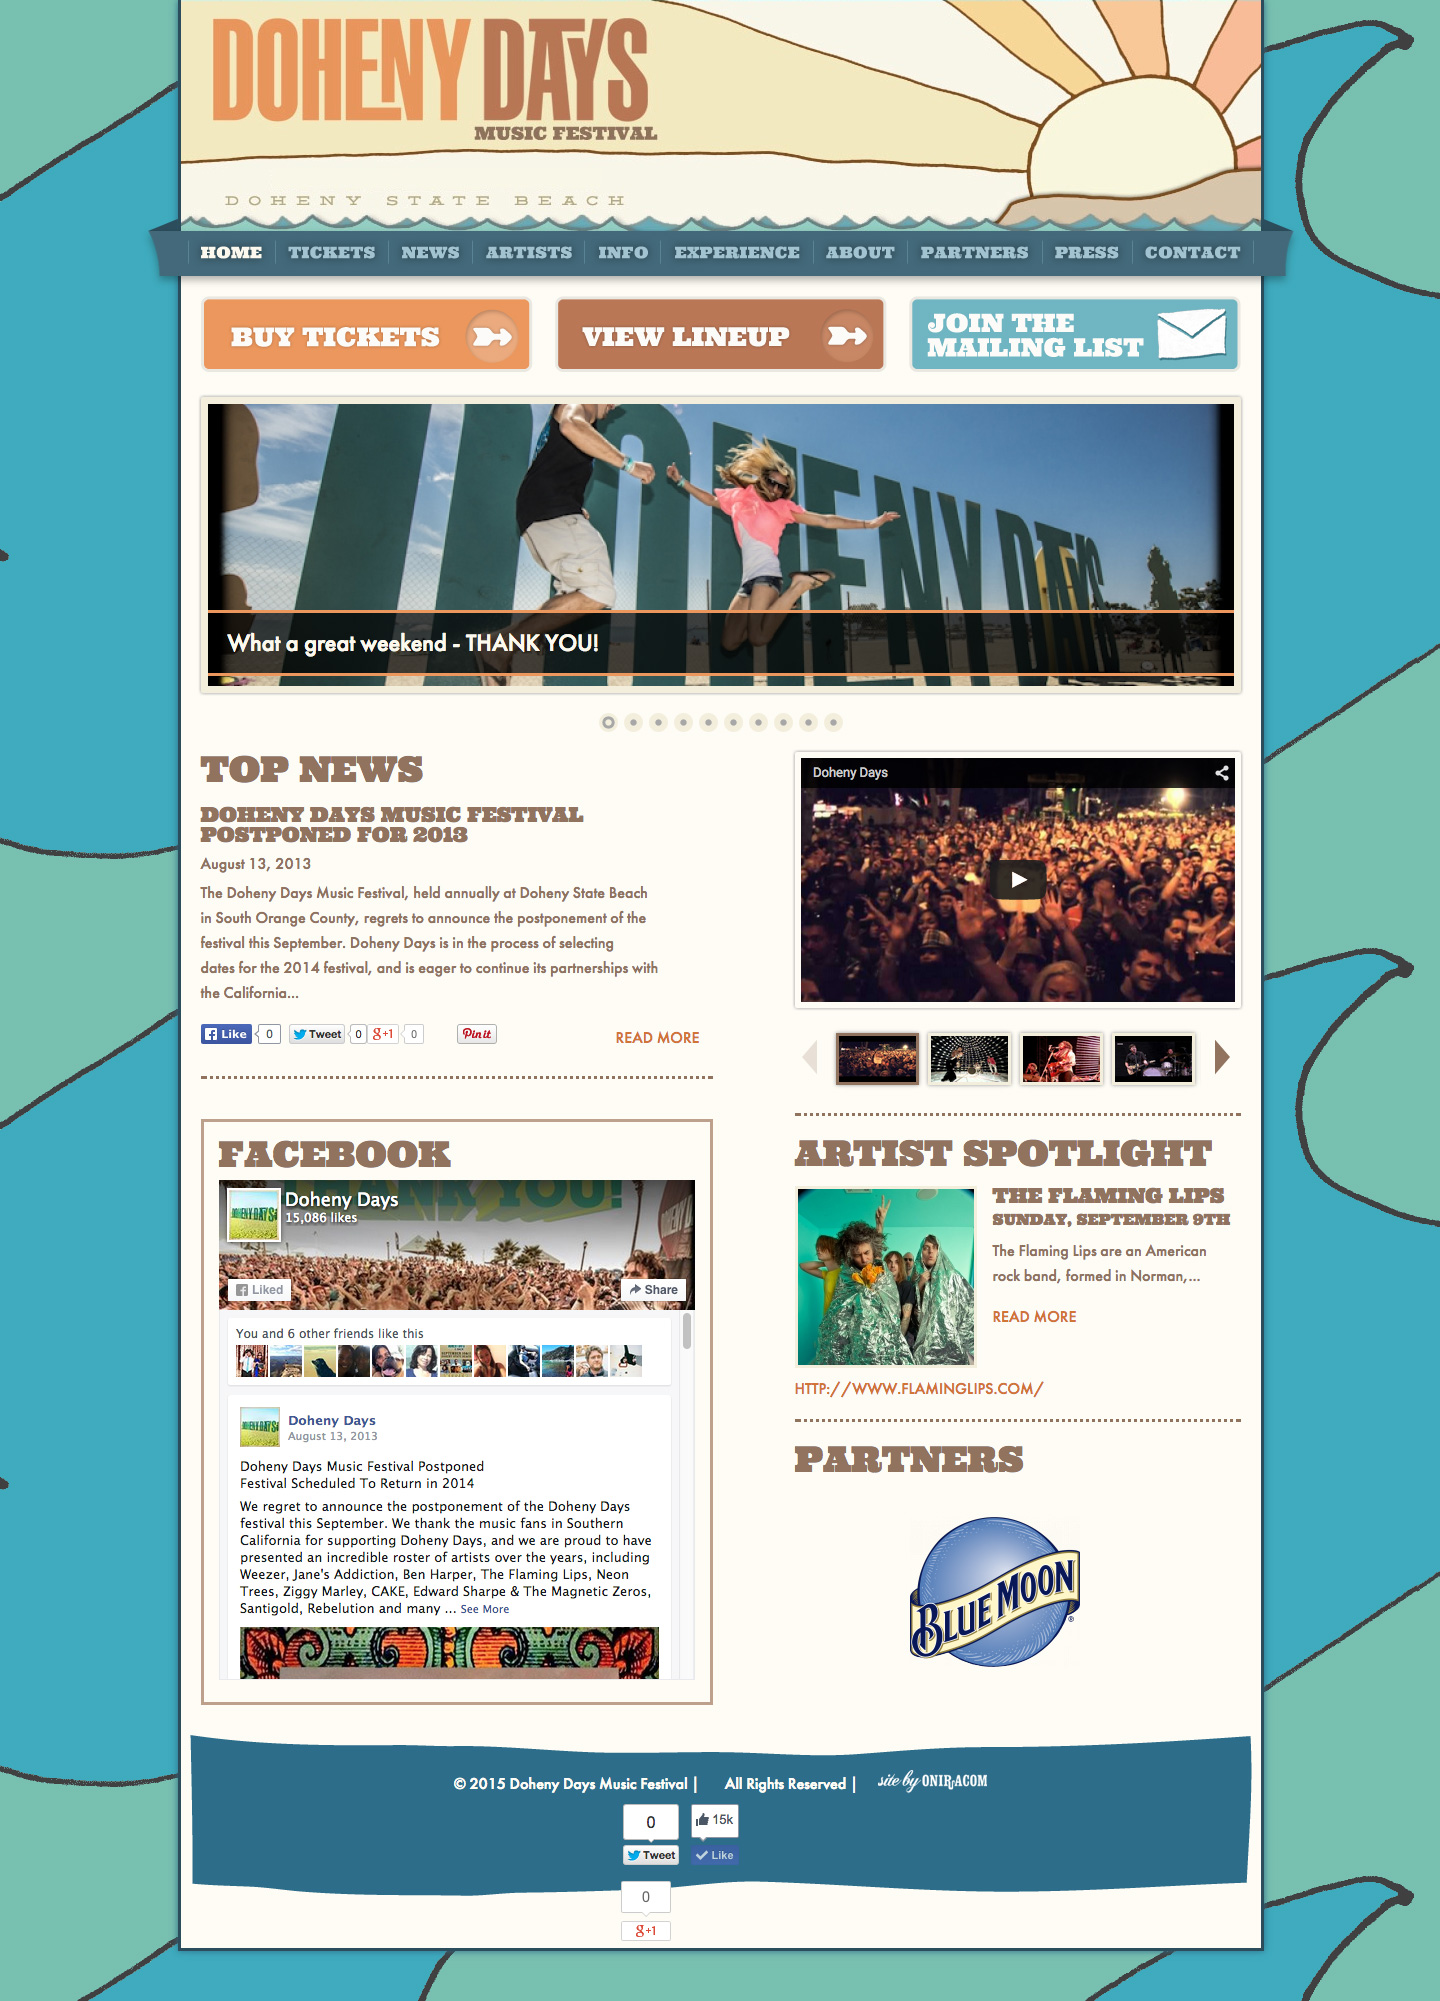 Doheny Days website built by Aquatic in San Francisco